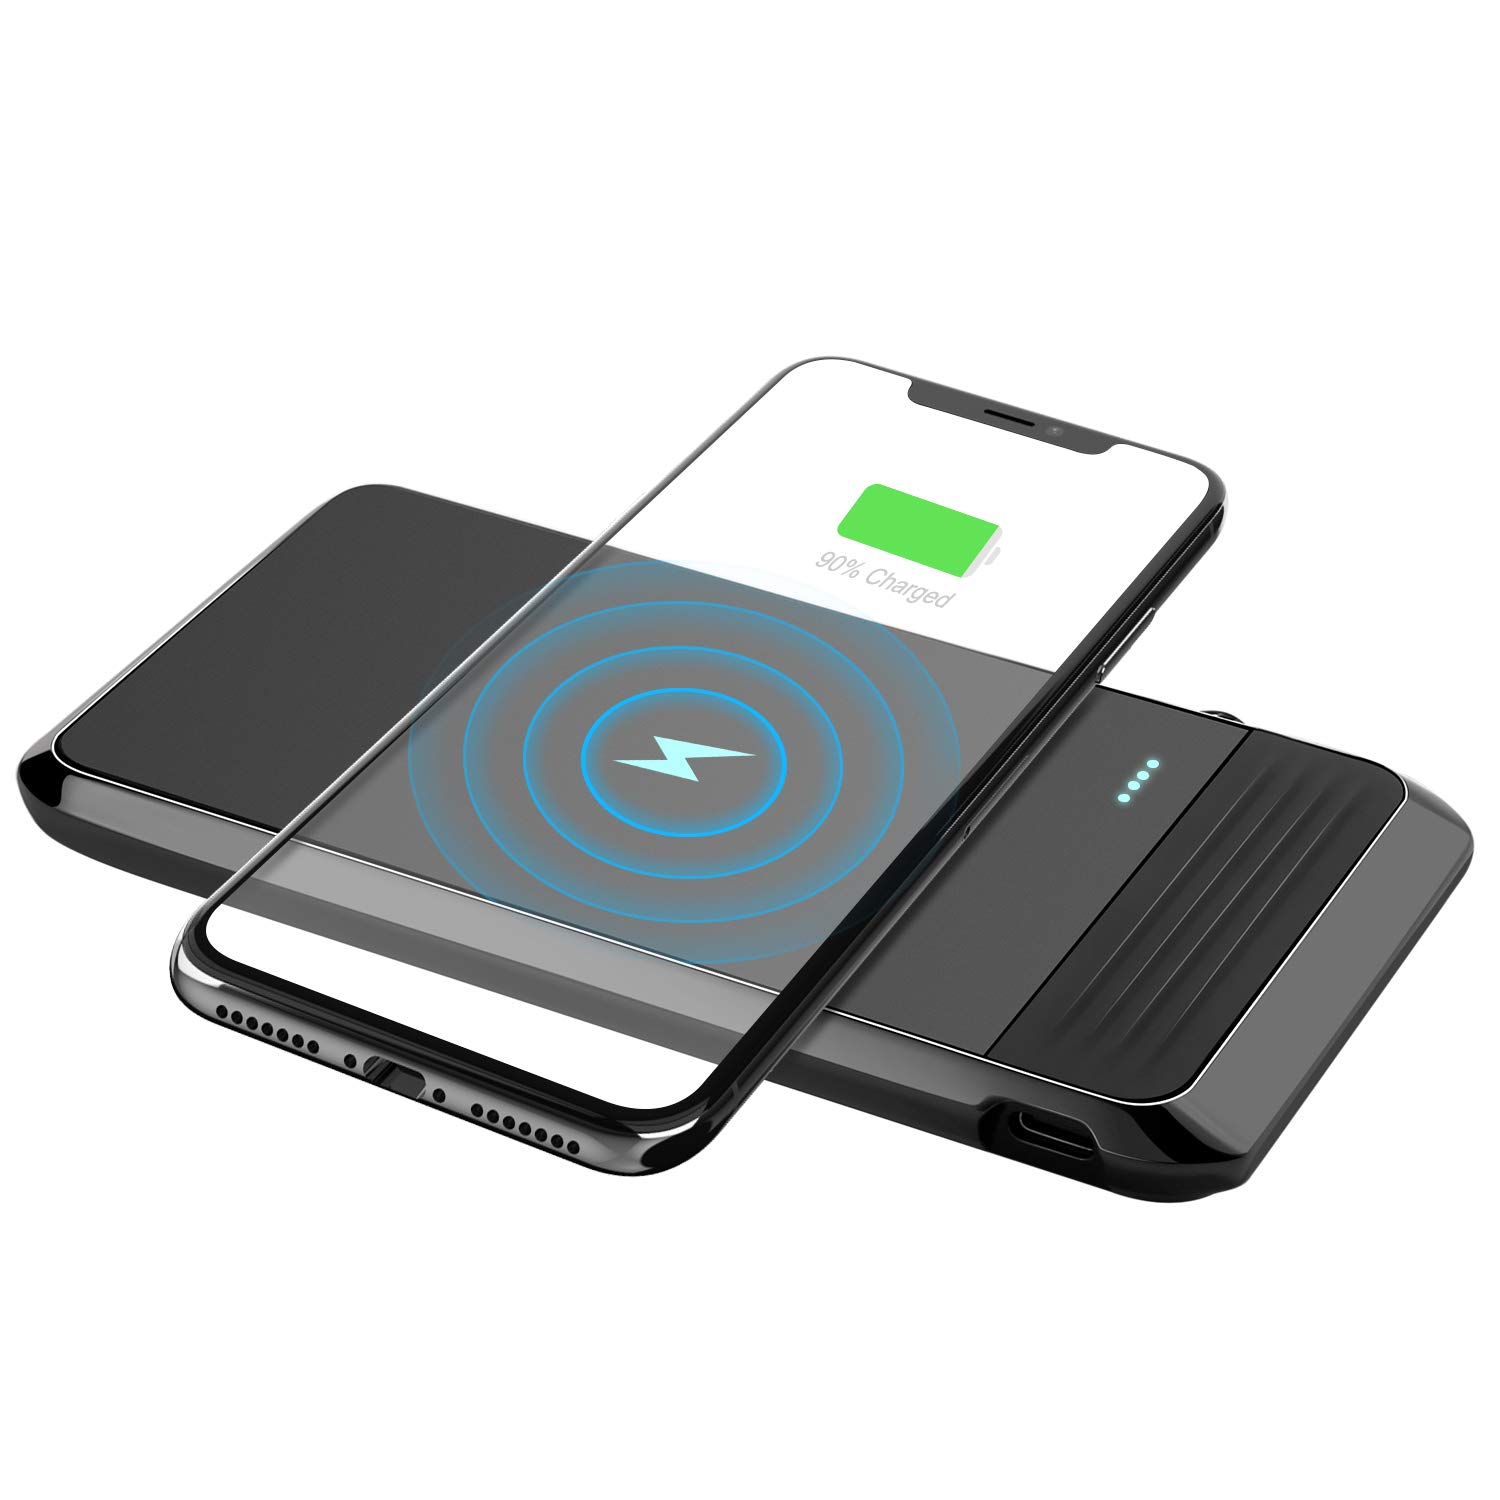 Power Bank Wireless Charger AIRGINE 3 in1 Portable Phone Charger for Smart Phone, Android Phone, Tablet and More (AC Adapter+USB Cable Included)